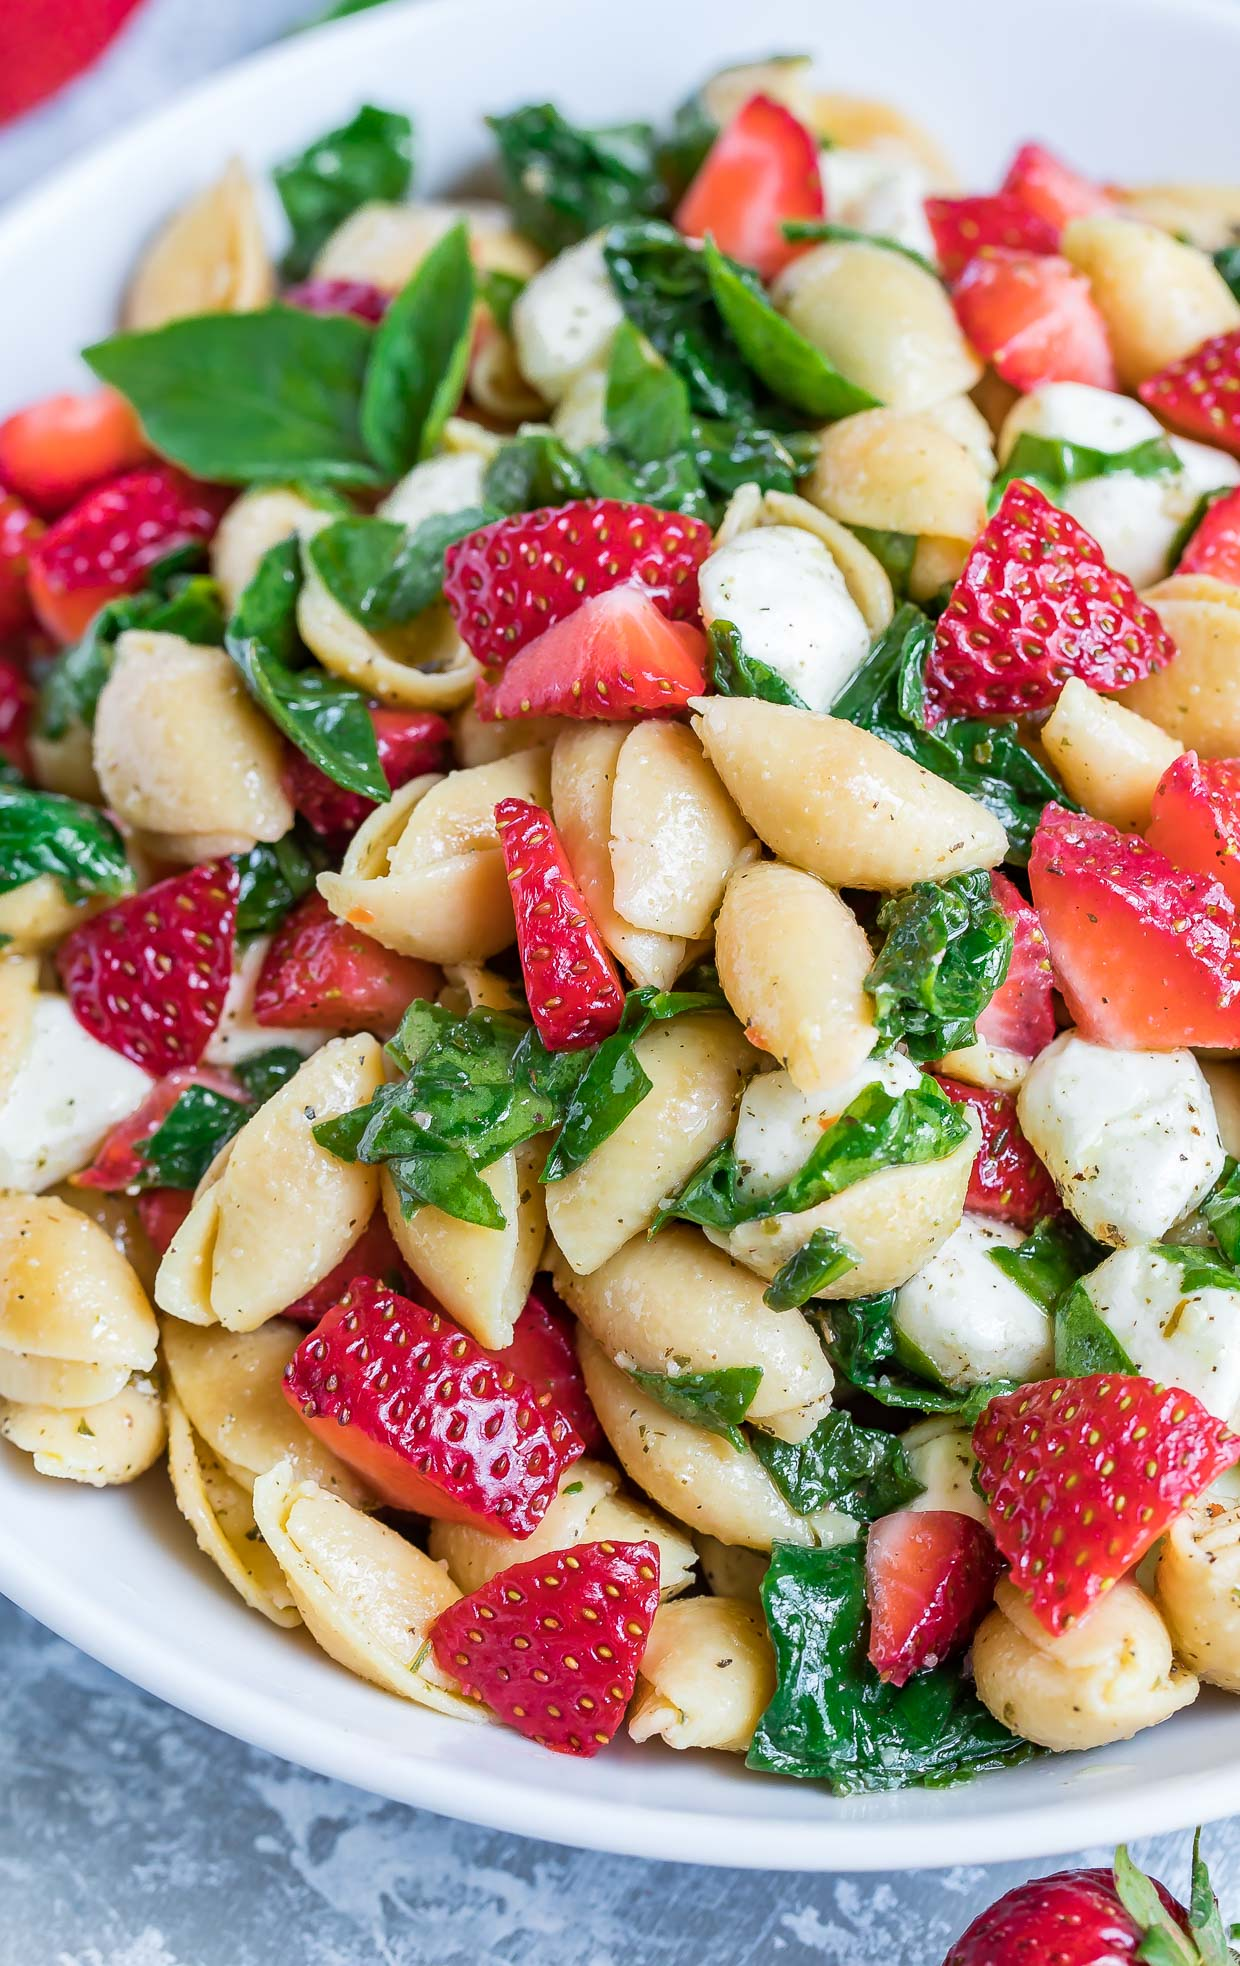 Let's lunch it up in style and pasta our salad with this scrumptious Strawberry Spinach Caprese Pasta Salad featuring gluten-free Chickapea Pasta!